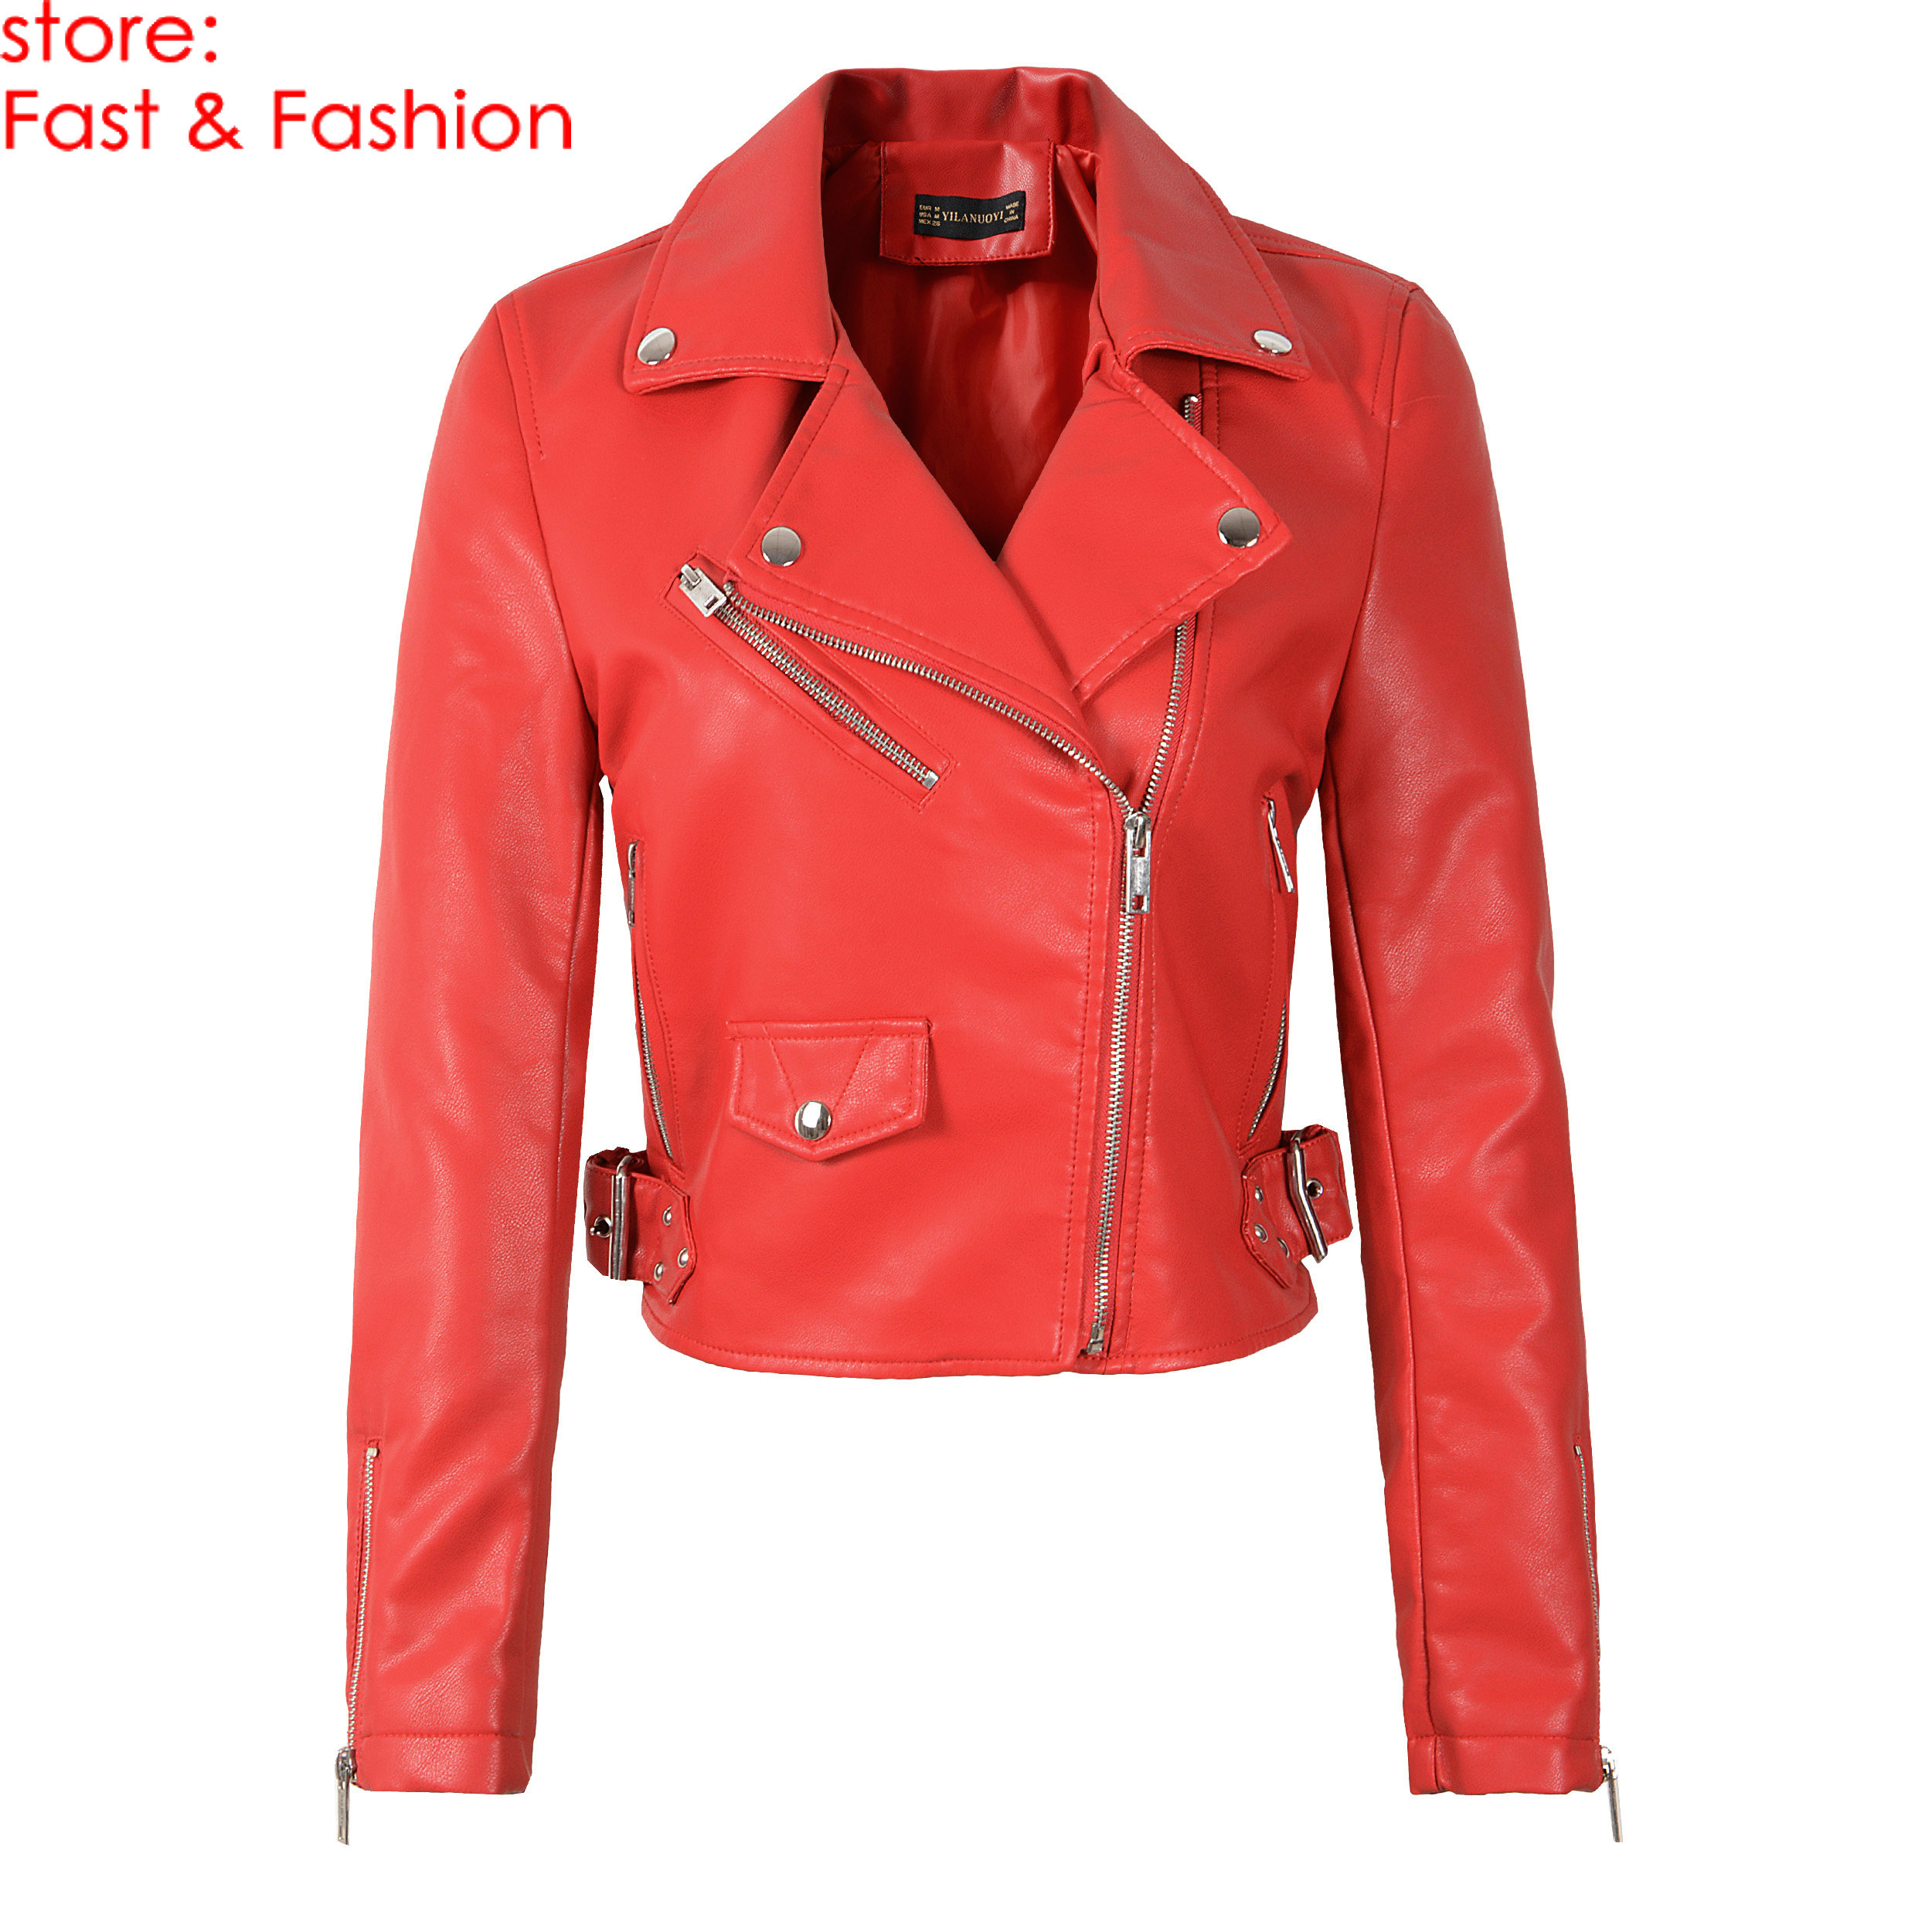 2019 New Fashion Women Autumn Winter Rivet Faux Soft   Leather   Jackets Lady PU Red Black Pink Zippers Coats Motorcycle Outerwear